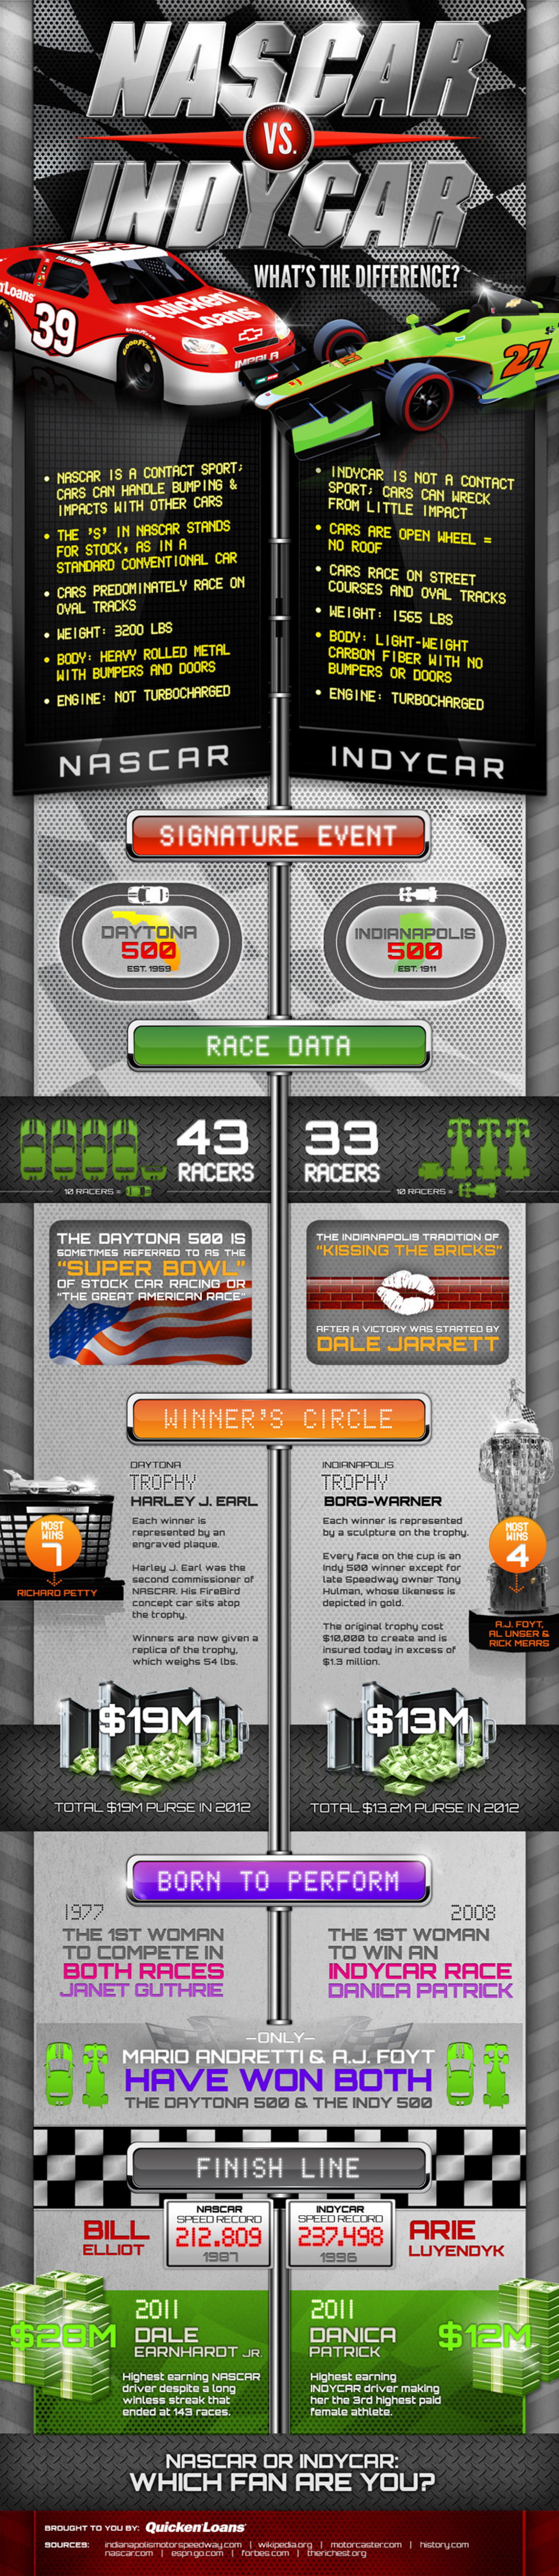 NASCAR vs. INDYCAR: What's the Difference? Infographic